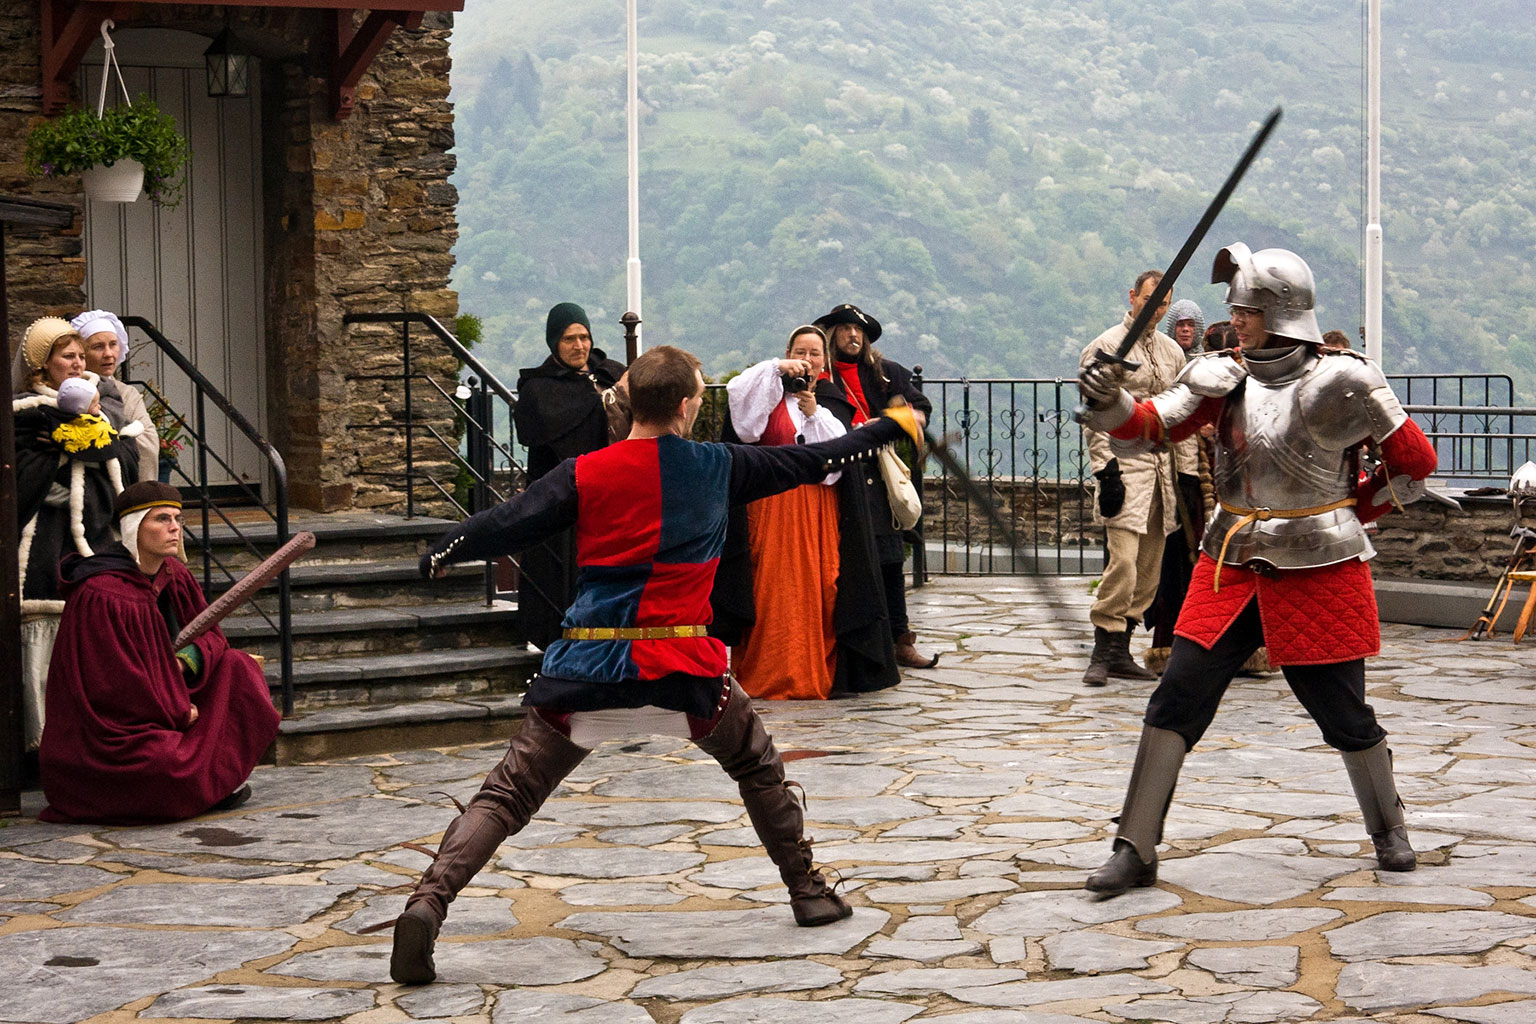 A Medieval cosplay sword fight at Stahleck Castle.